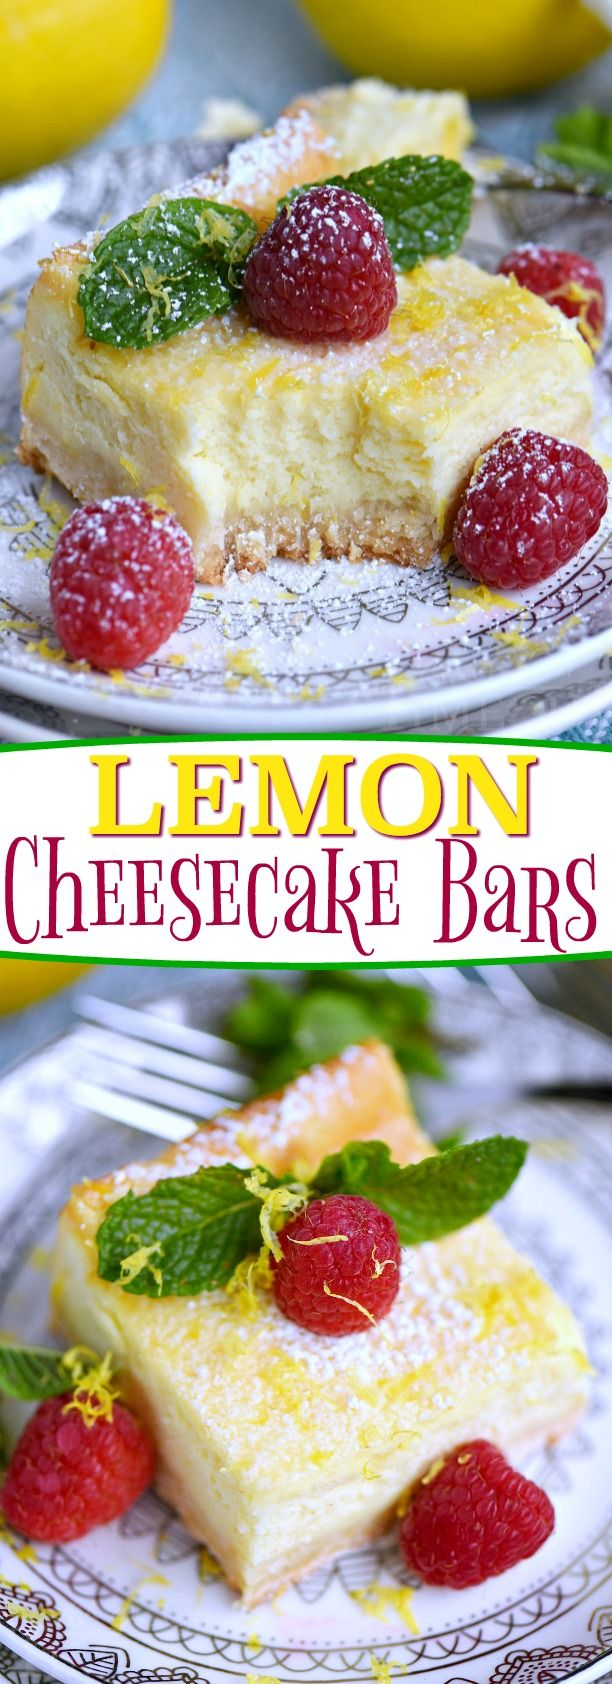 My Aunt Pams Lemon Cheesecake Bars are made with lots of fresh lemon juice and zest so theyre bursting with lemon flavor! Extra